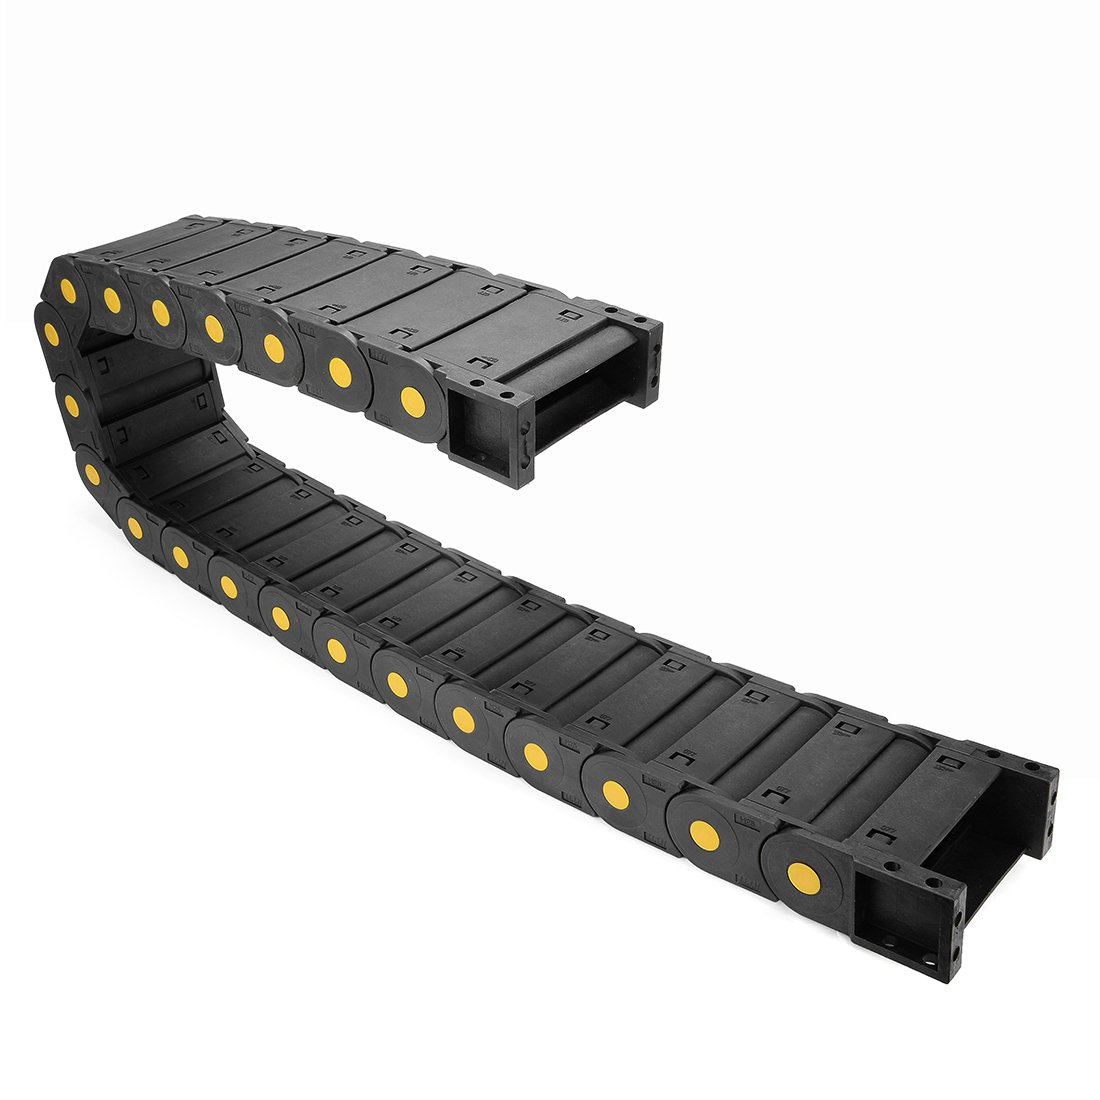 uxcell Drag Chain Cable Carrier Closed Type with End Connectors R28 15X20mm 1 Meter Plastic for Electrical CNC Router Machine Black